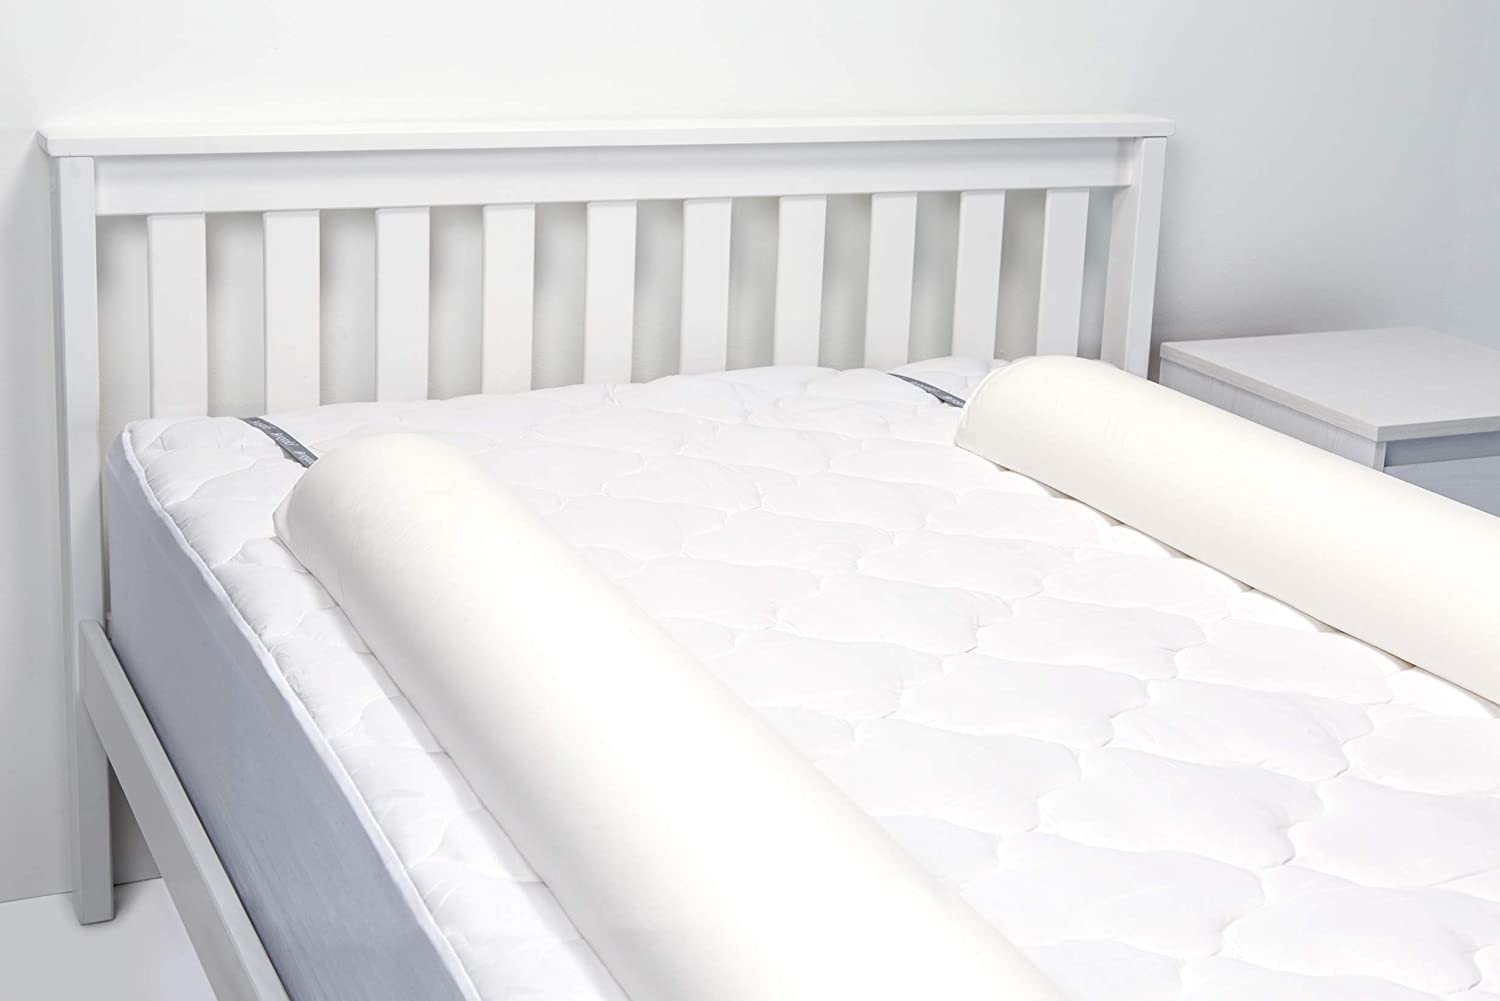 Regalo Double Sided Extra Long Toddler Bed Rail Bumper Foam Safety Guard for Bed White Double Sided